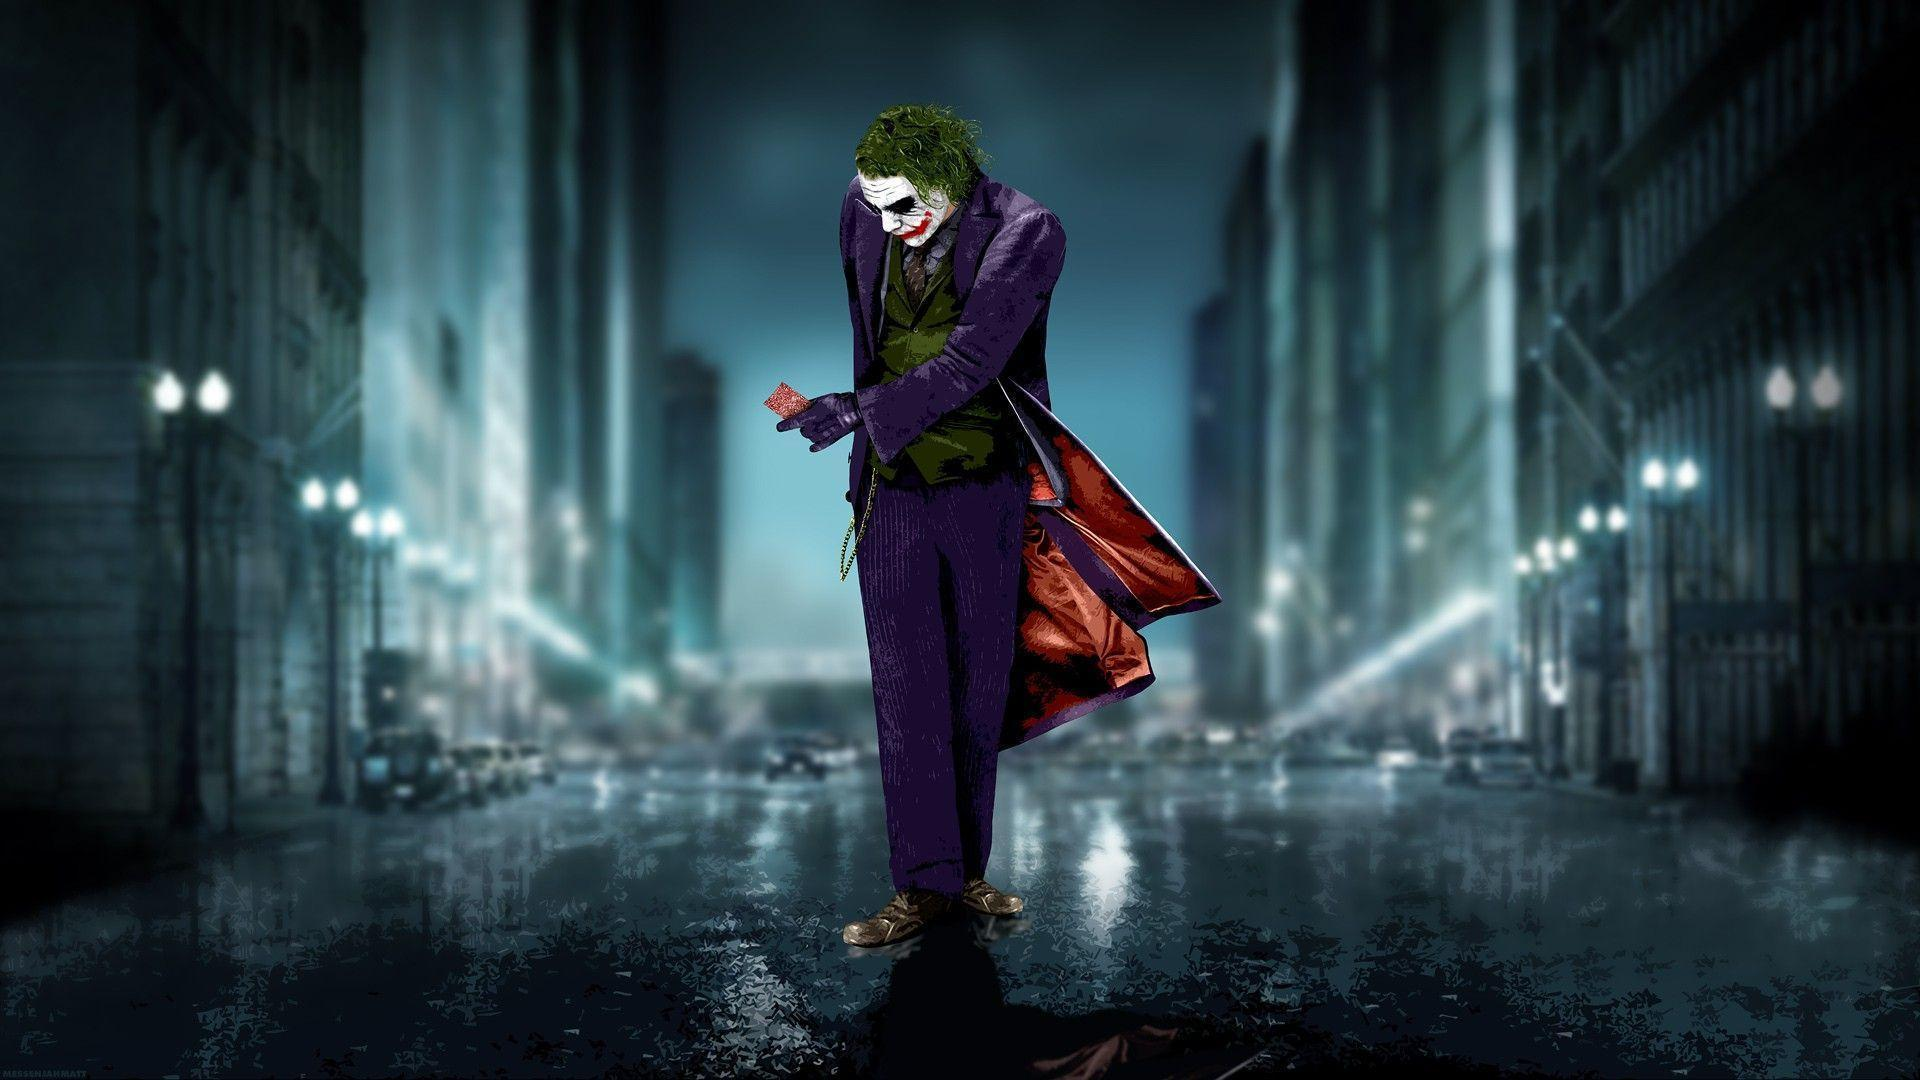 Joker Hd Wallpapers: The Joker Desktop Backgrounds